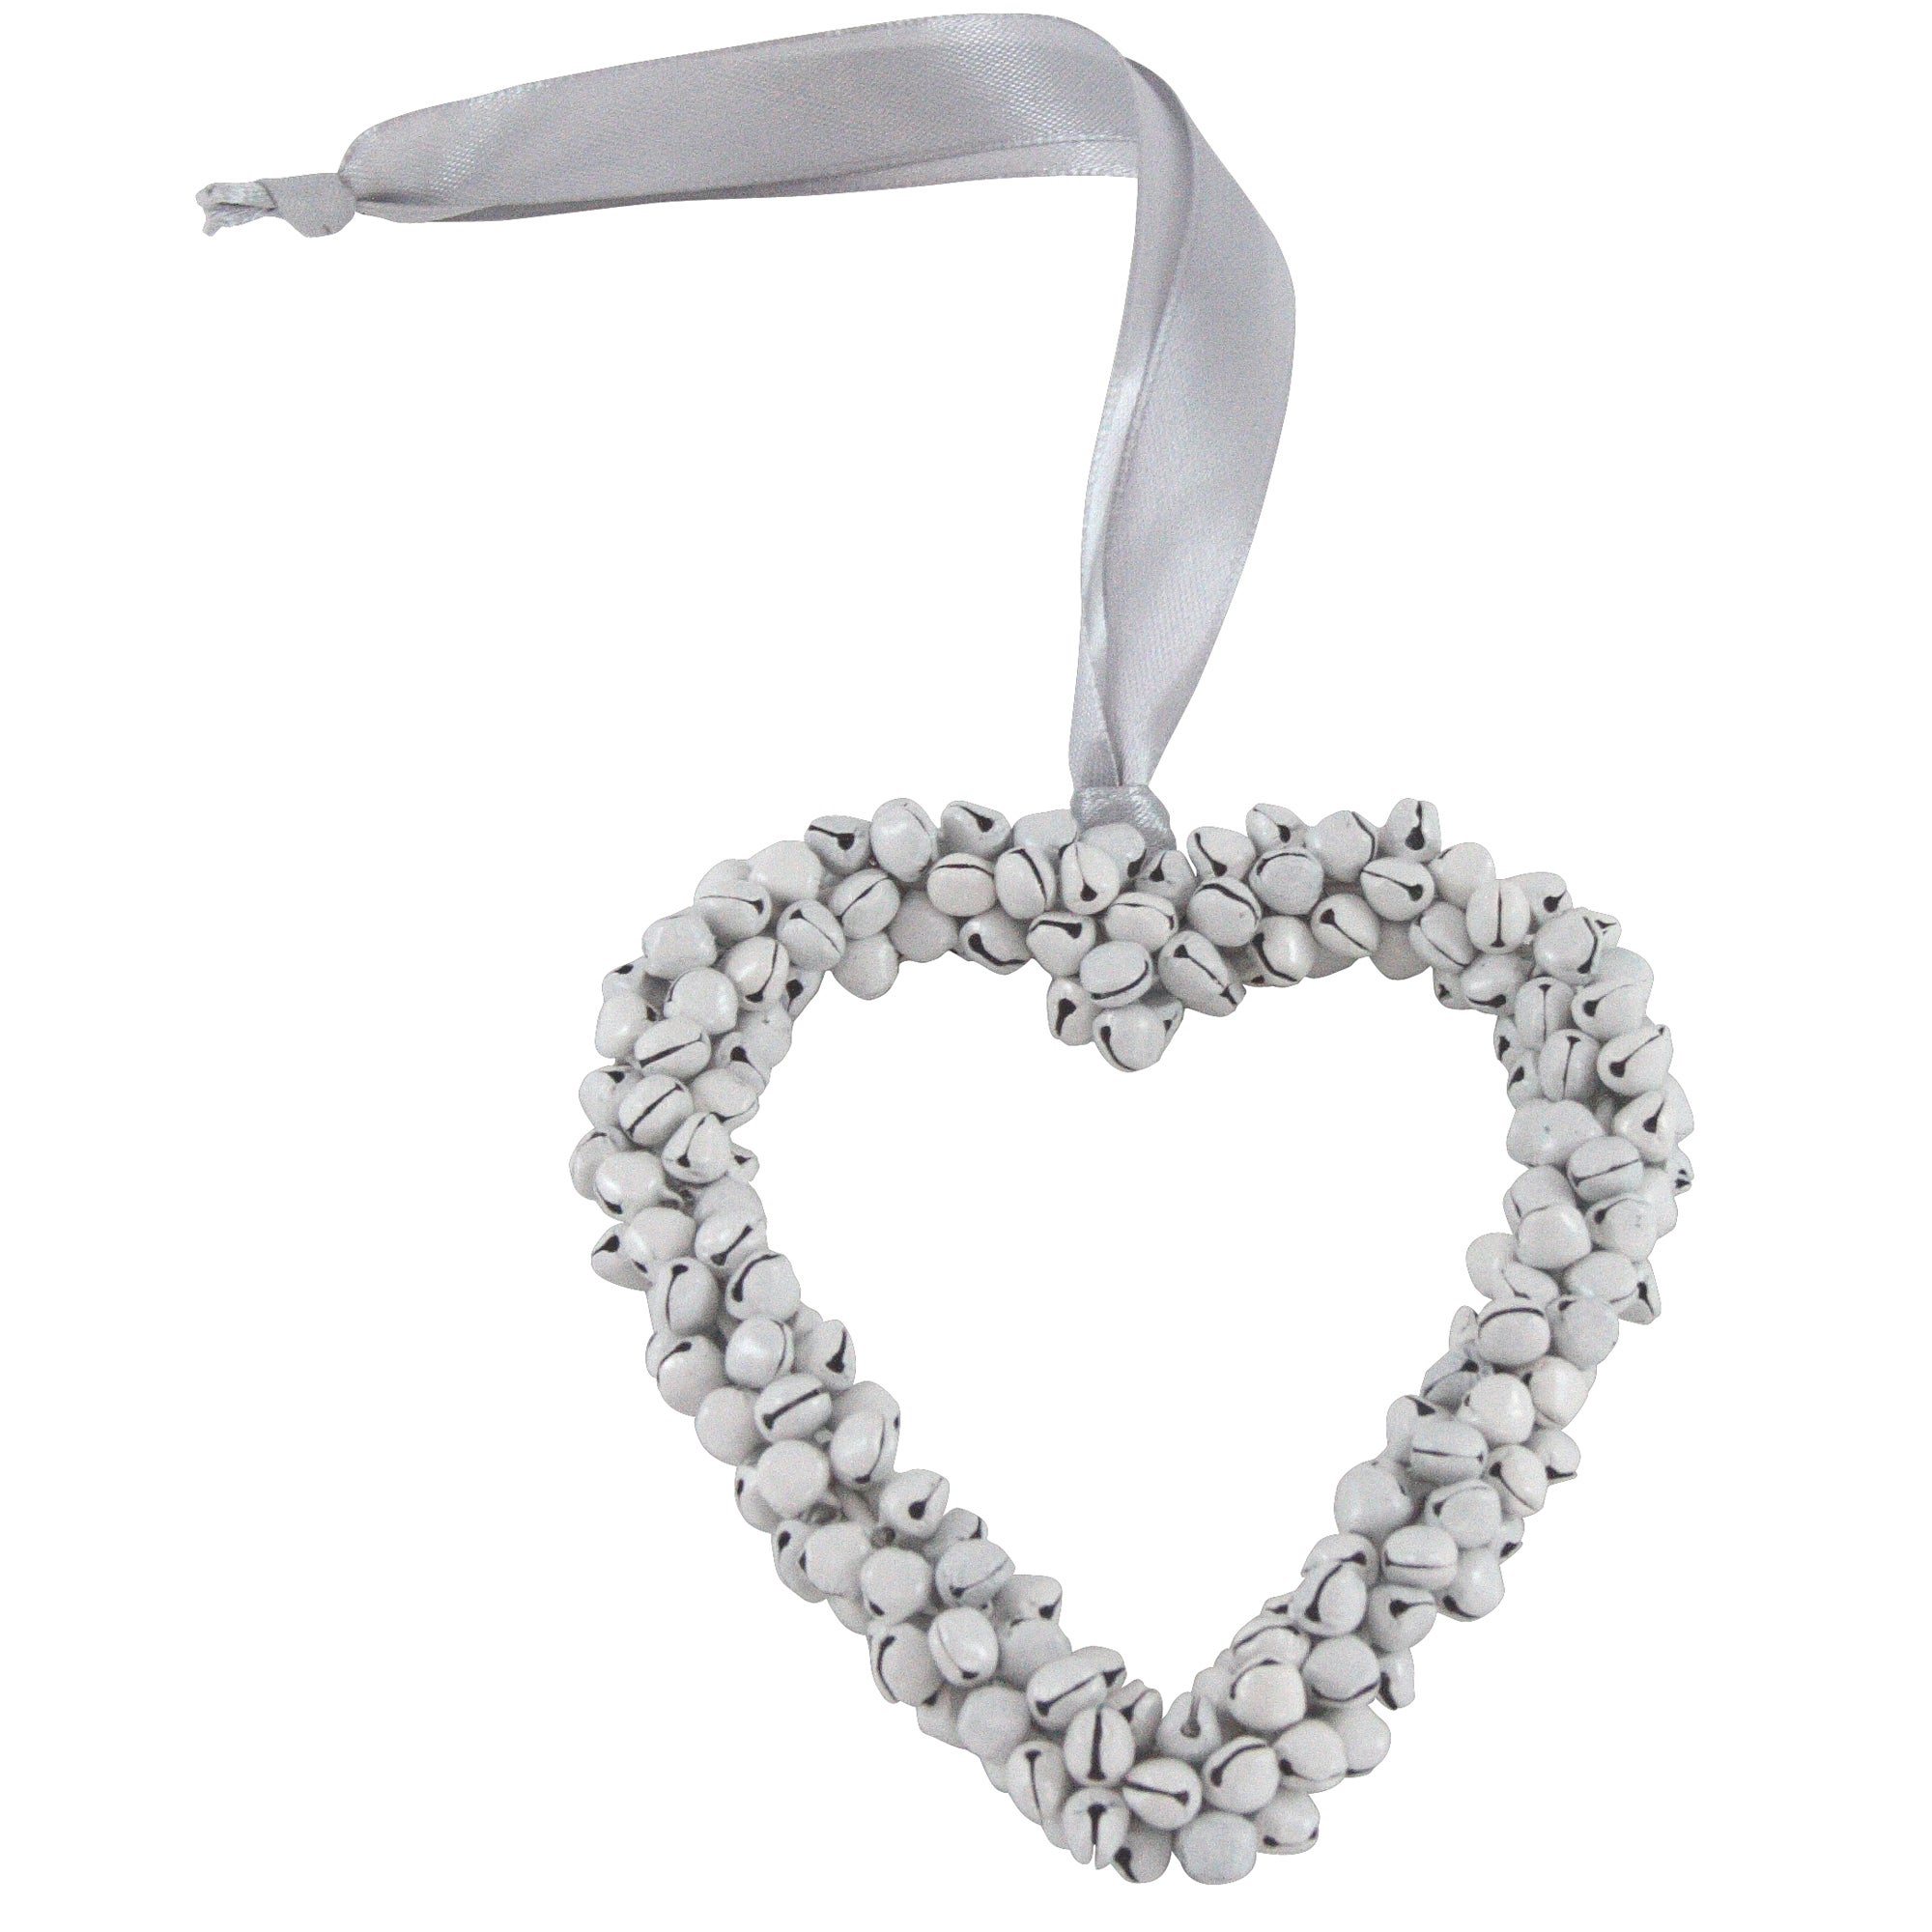 Plum Pudding Collection Hanging Heart Decoration with Bells